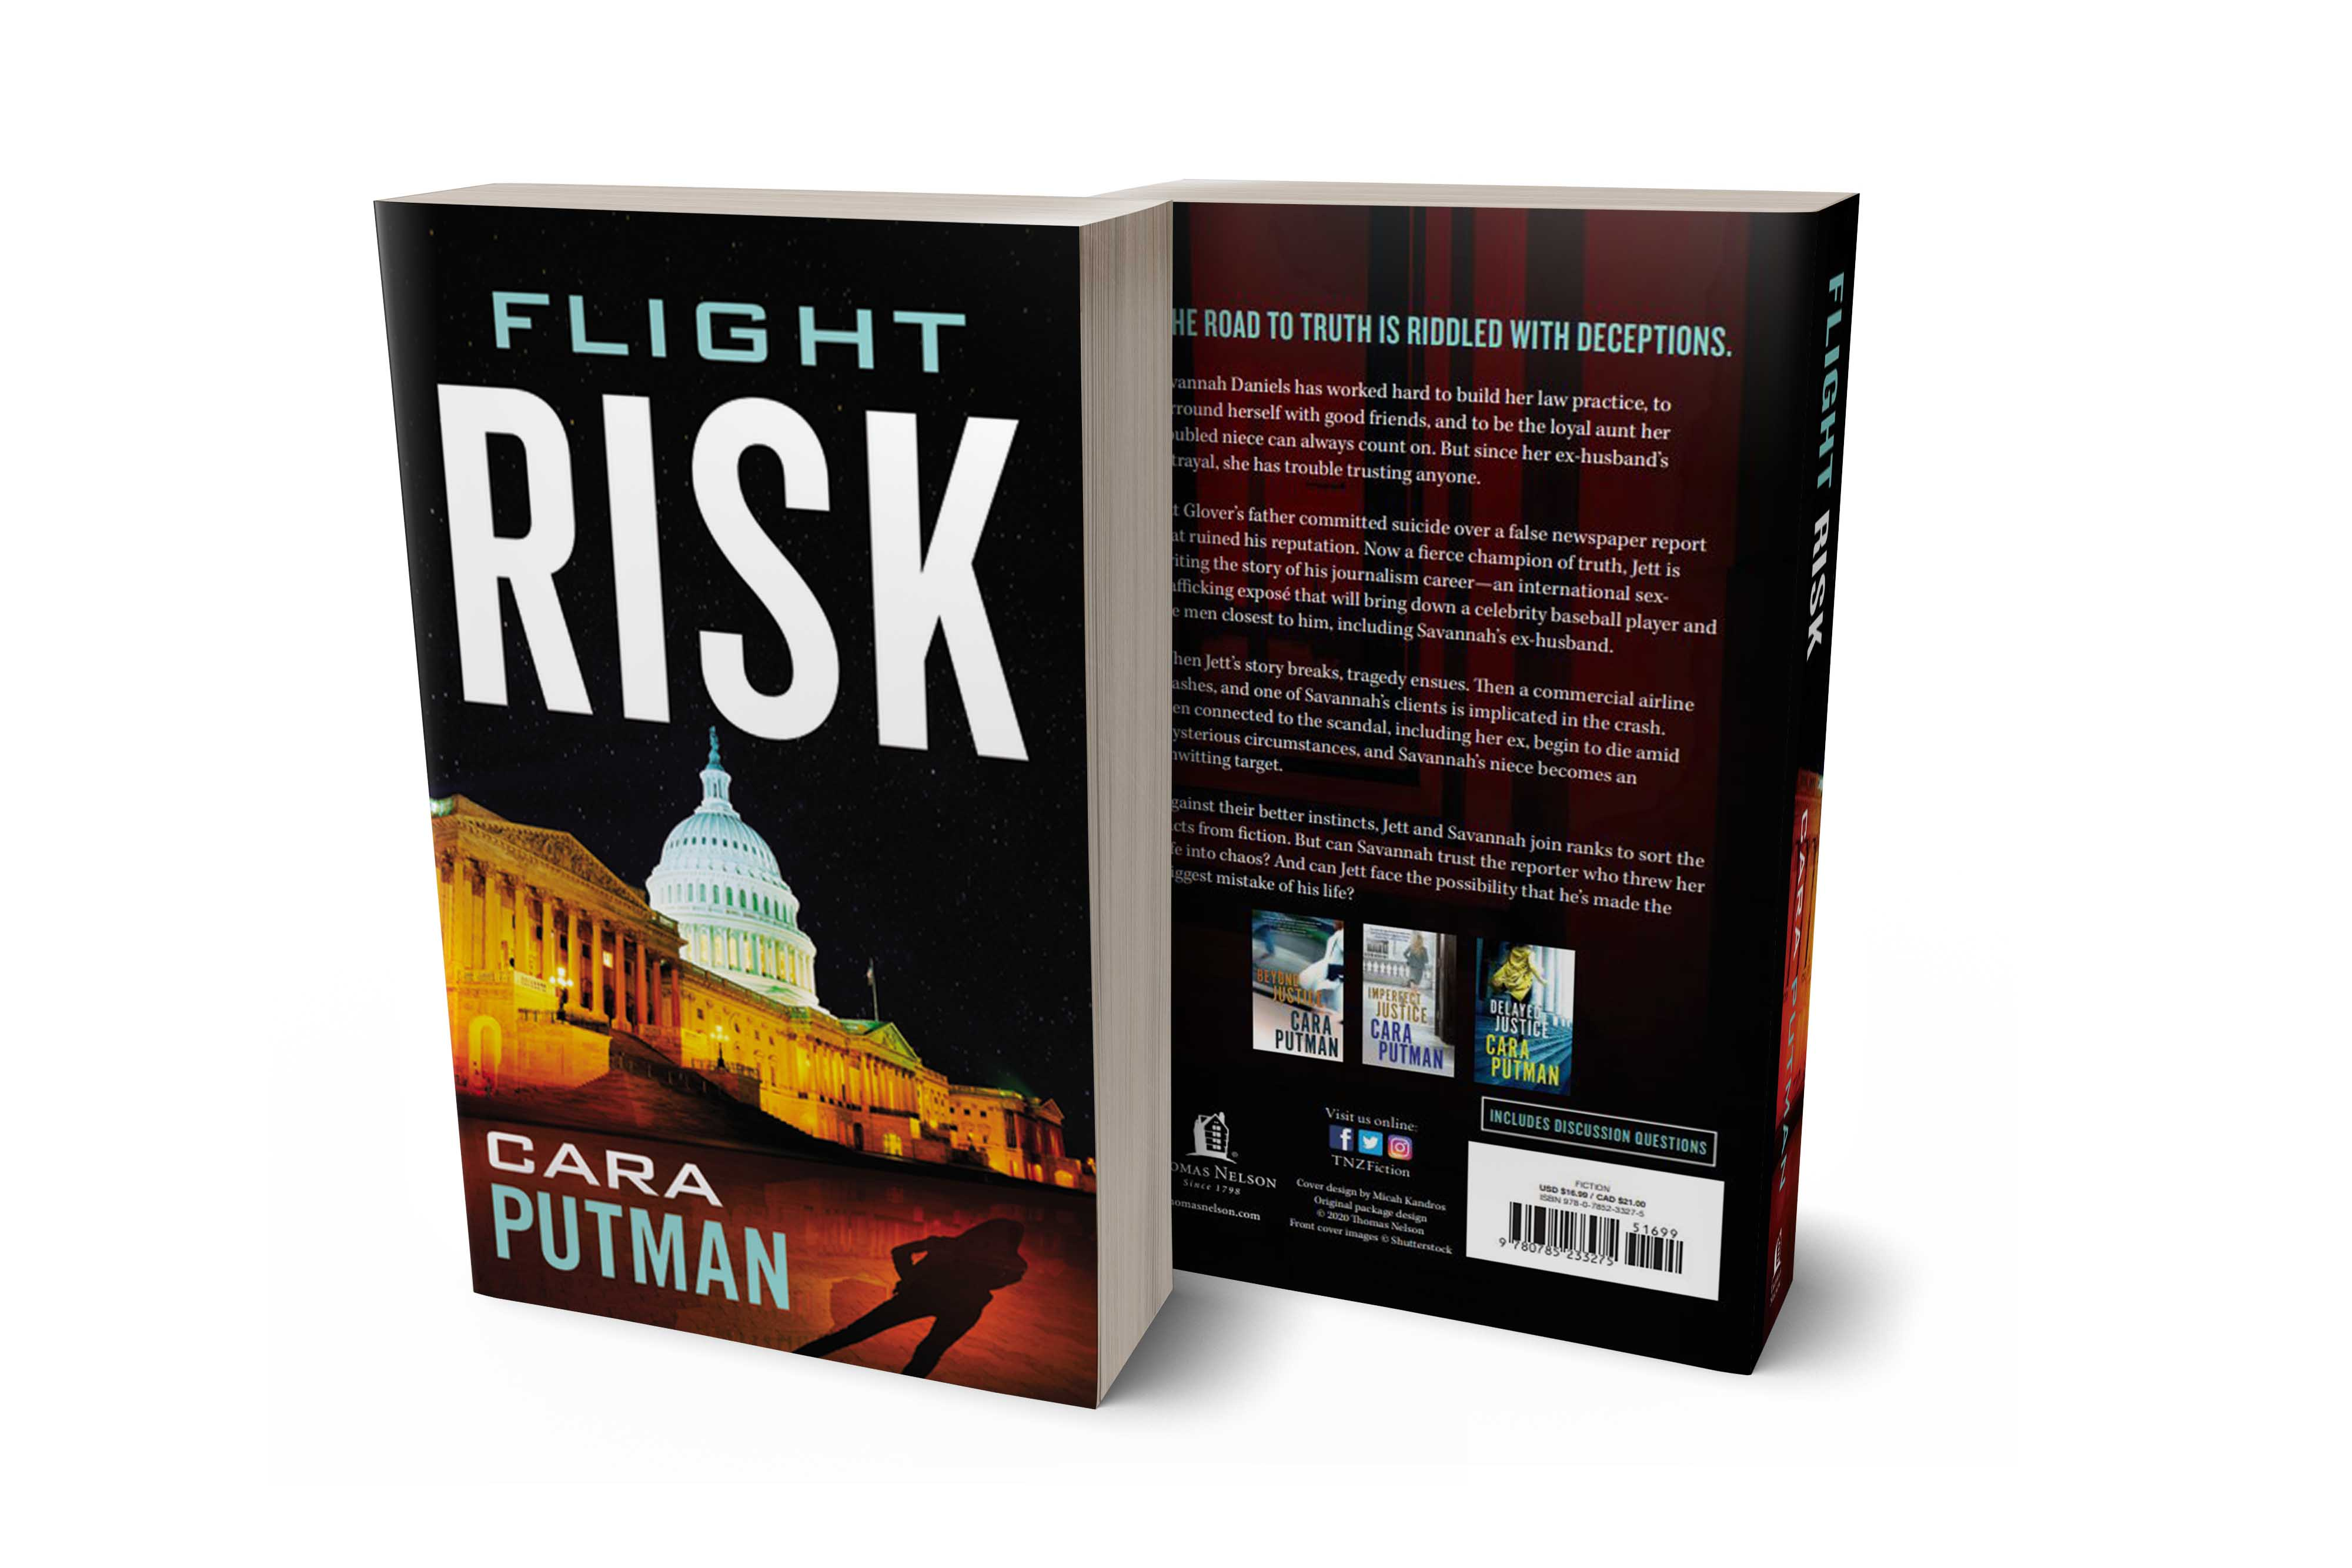 Flight Risk front and back covers